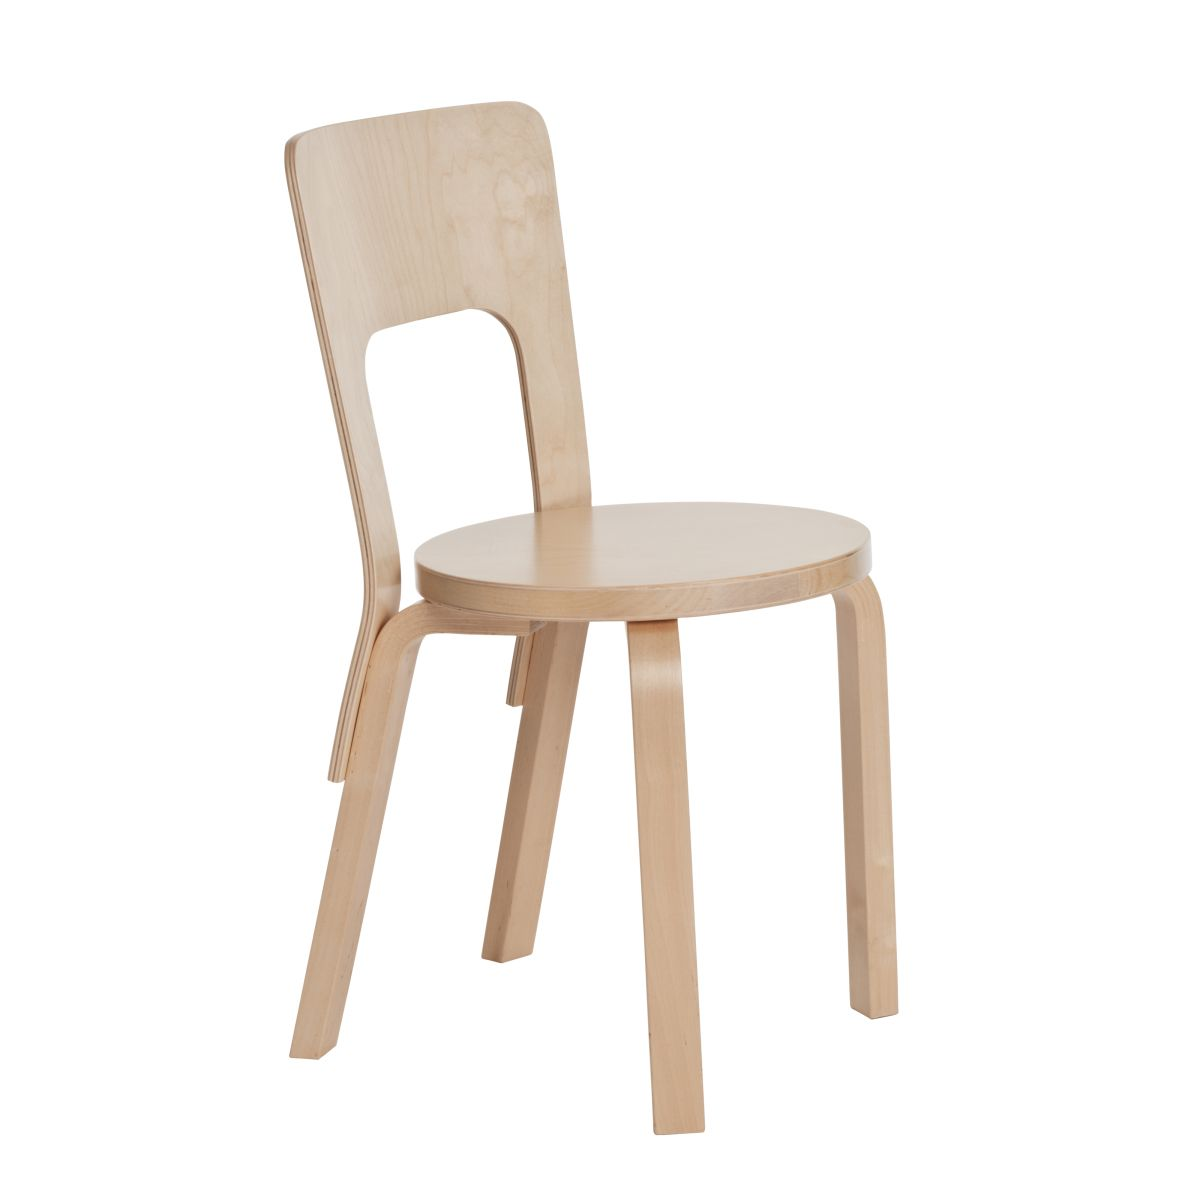 Chair-66-Clear-Lacquer